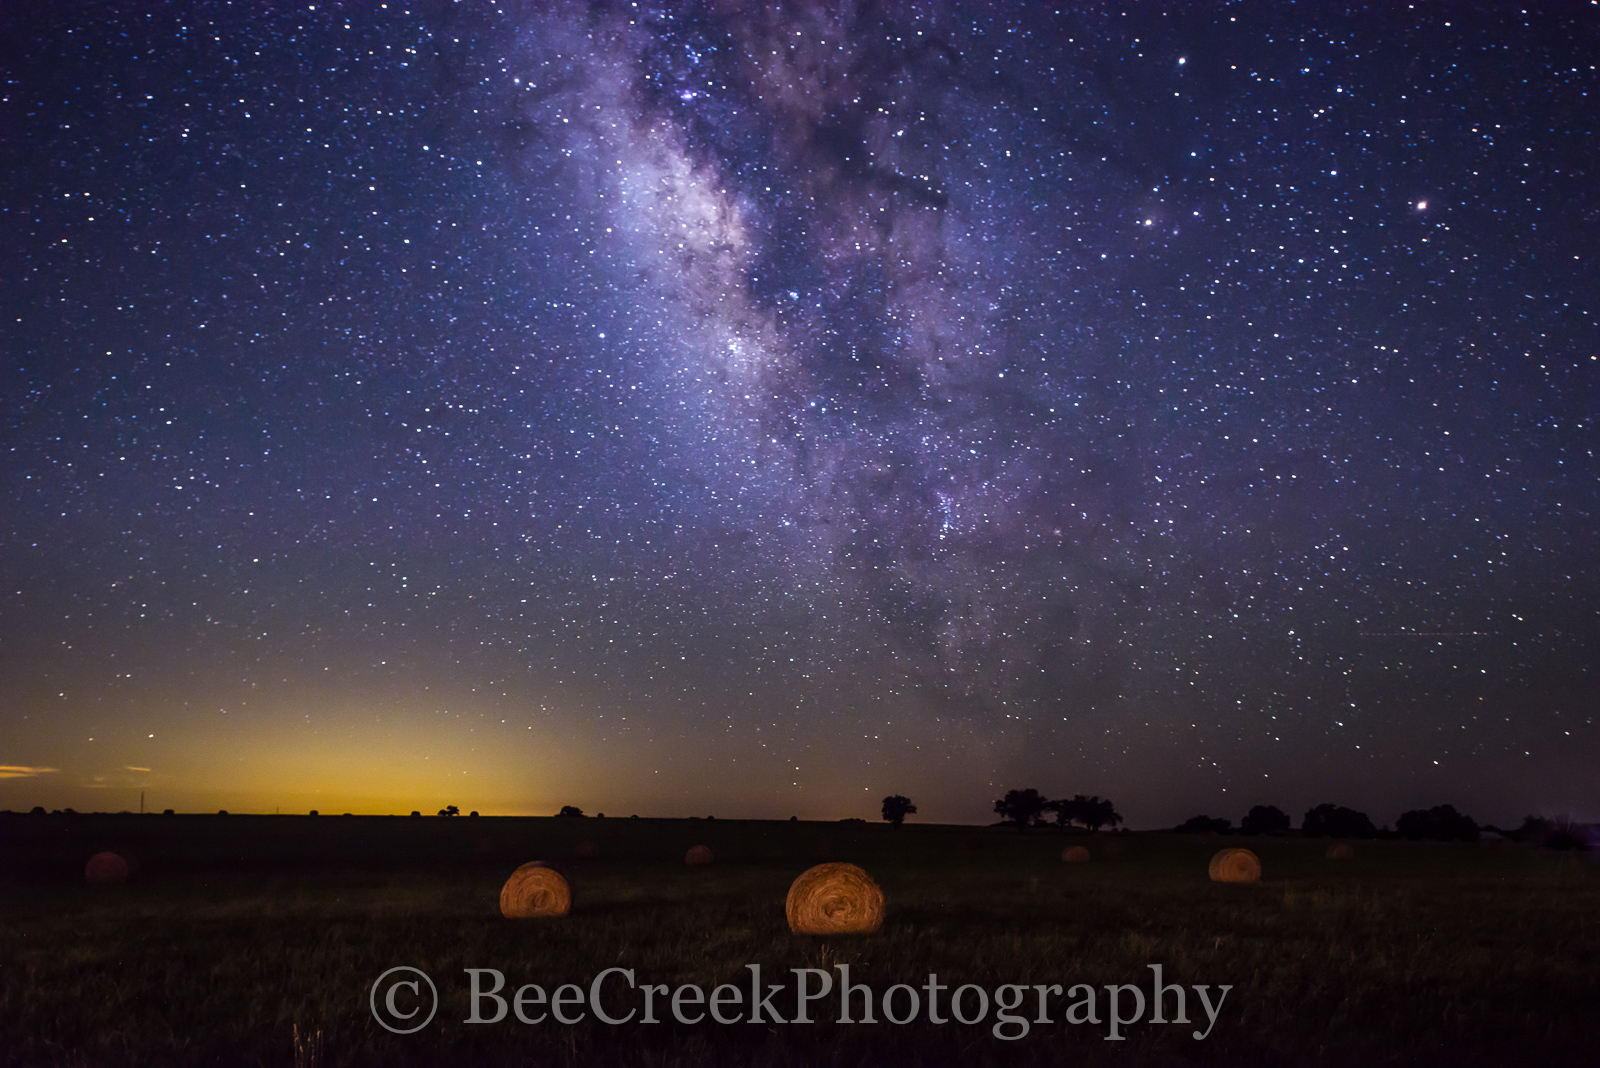 Astronomy, astrophotography, celestial, dark, dark skies, galaxies, galaxy, golden, hay bales, landscapes, light pollution, milky way, milkyway, night, night photography, night skies, planets, star ph, photo